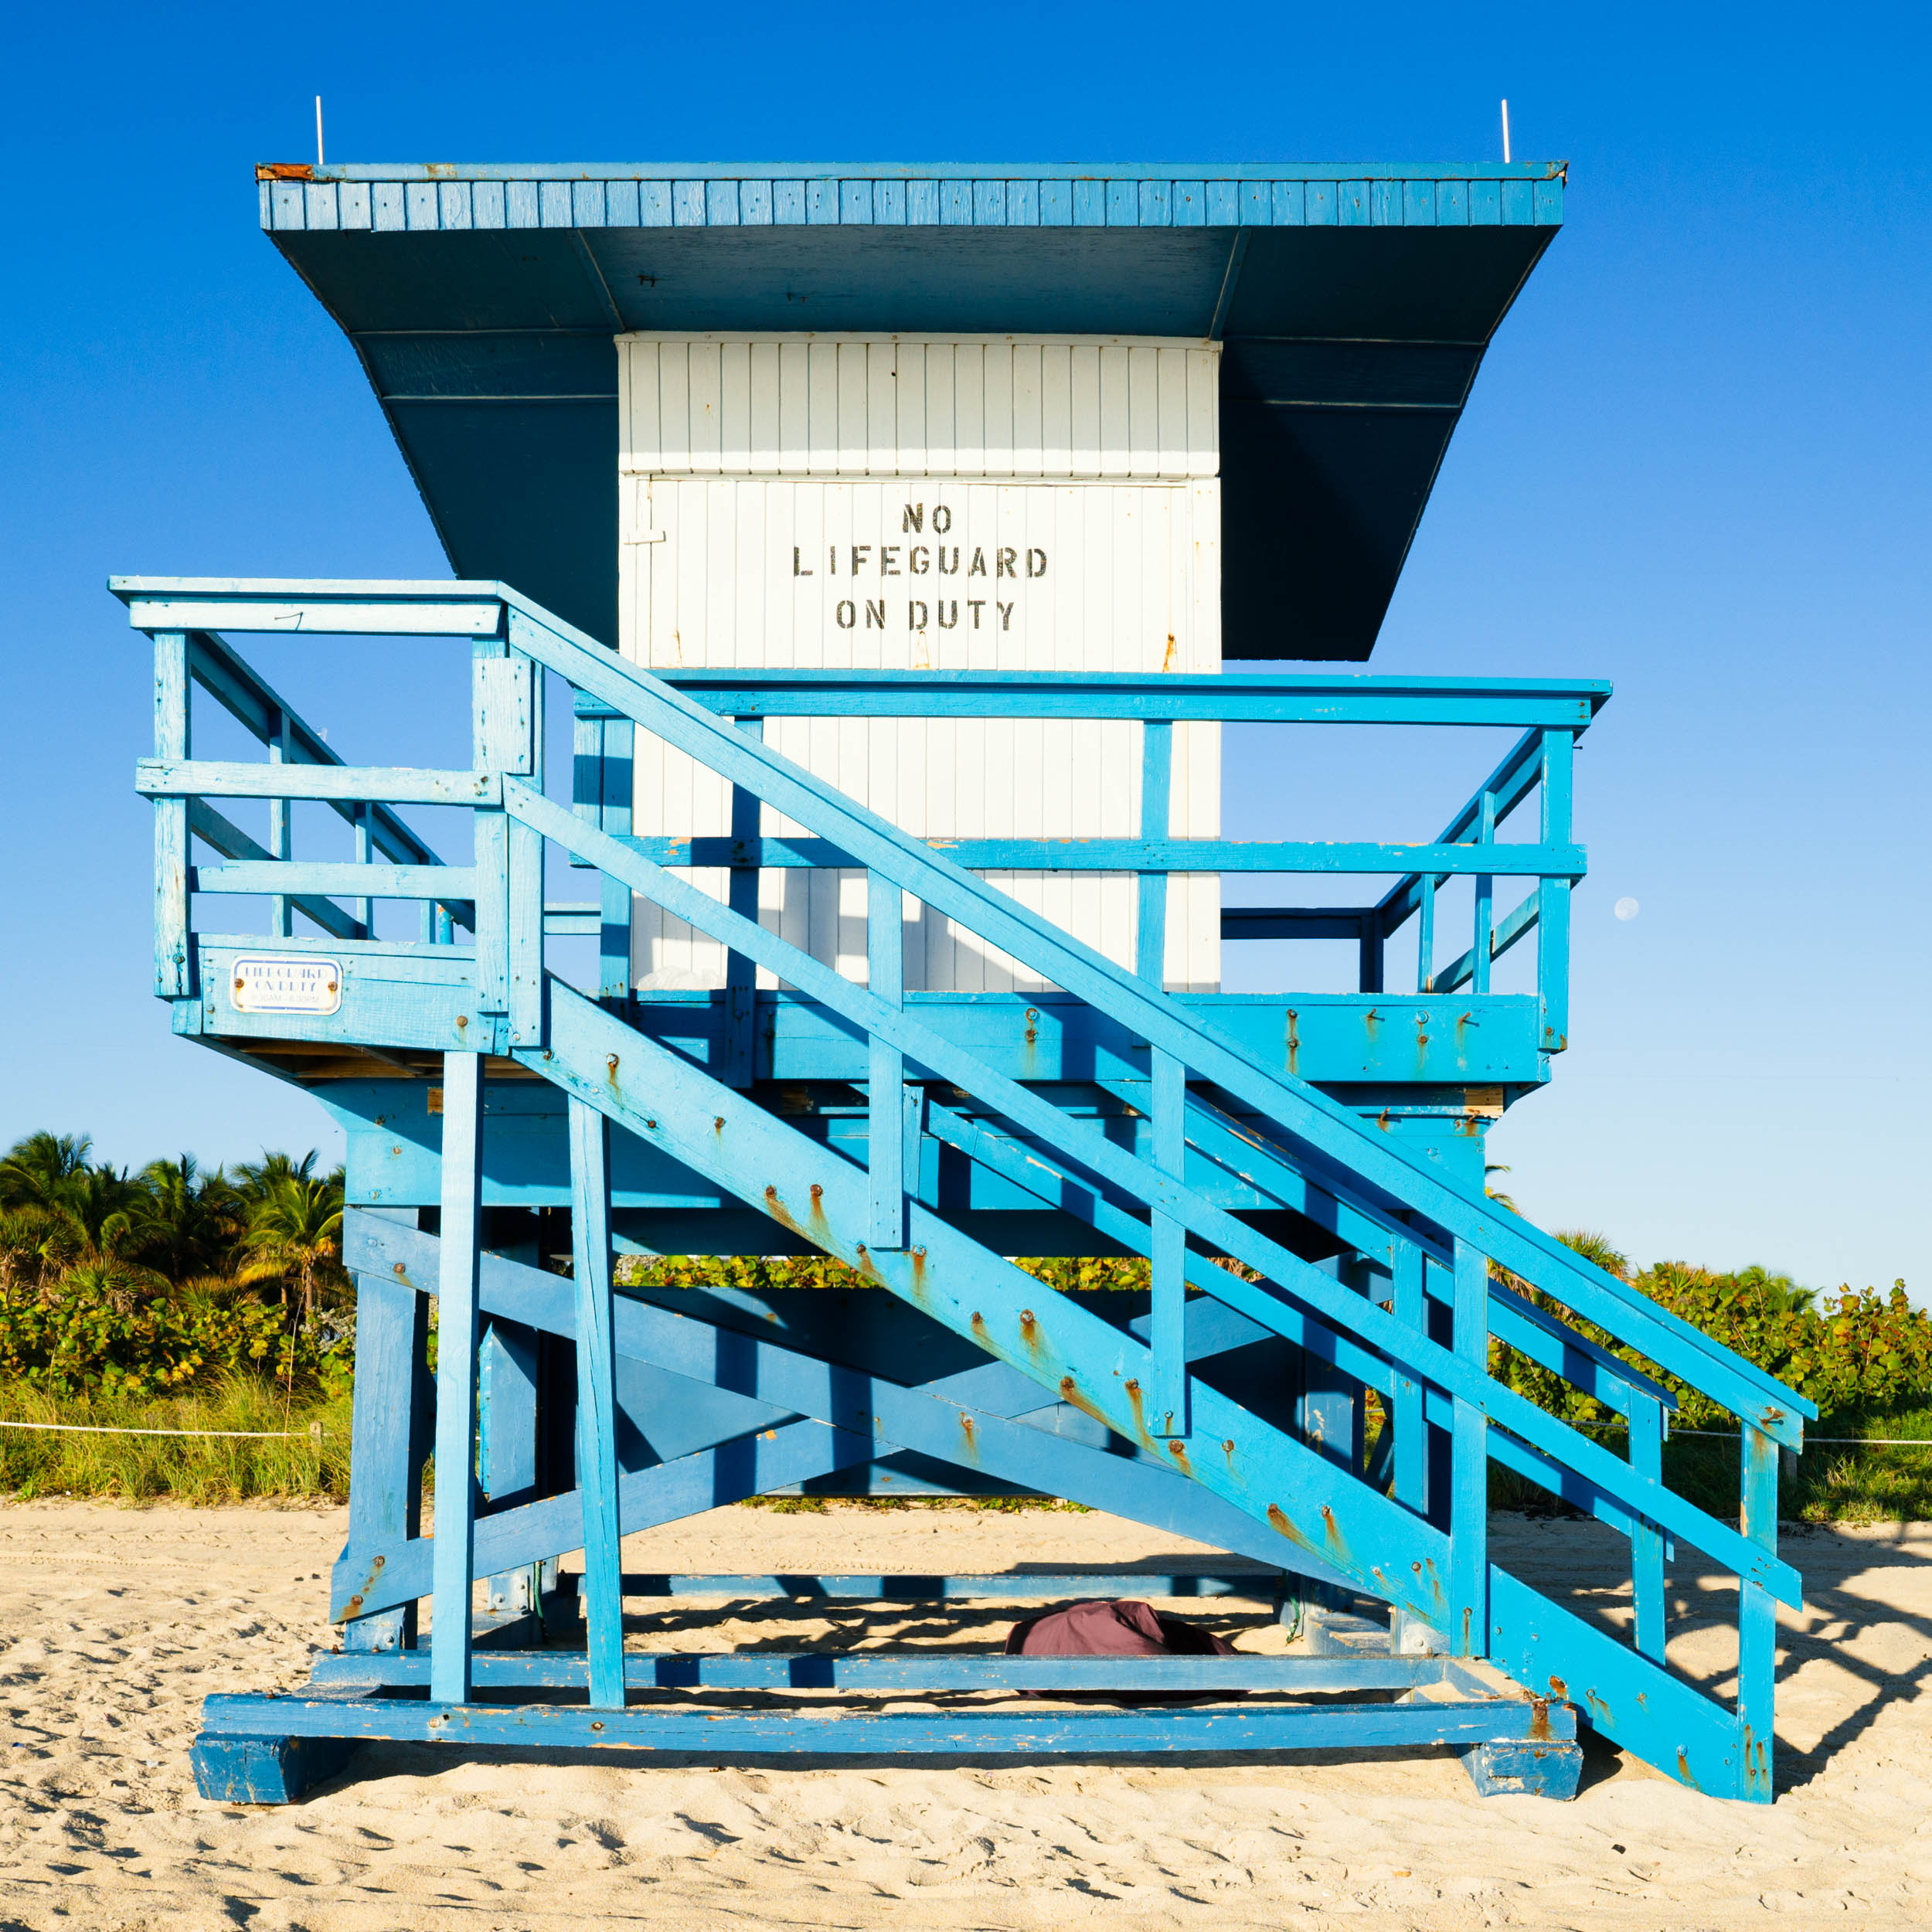 72nd St. Miami Lifeguard Stand - Front View